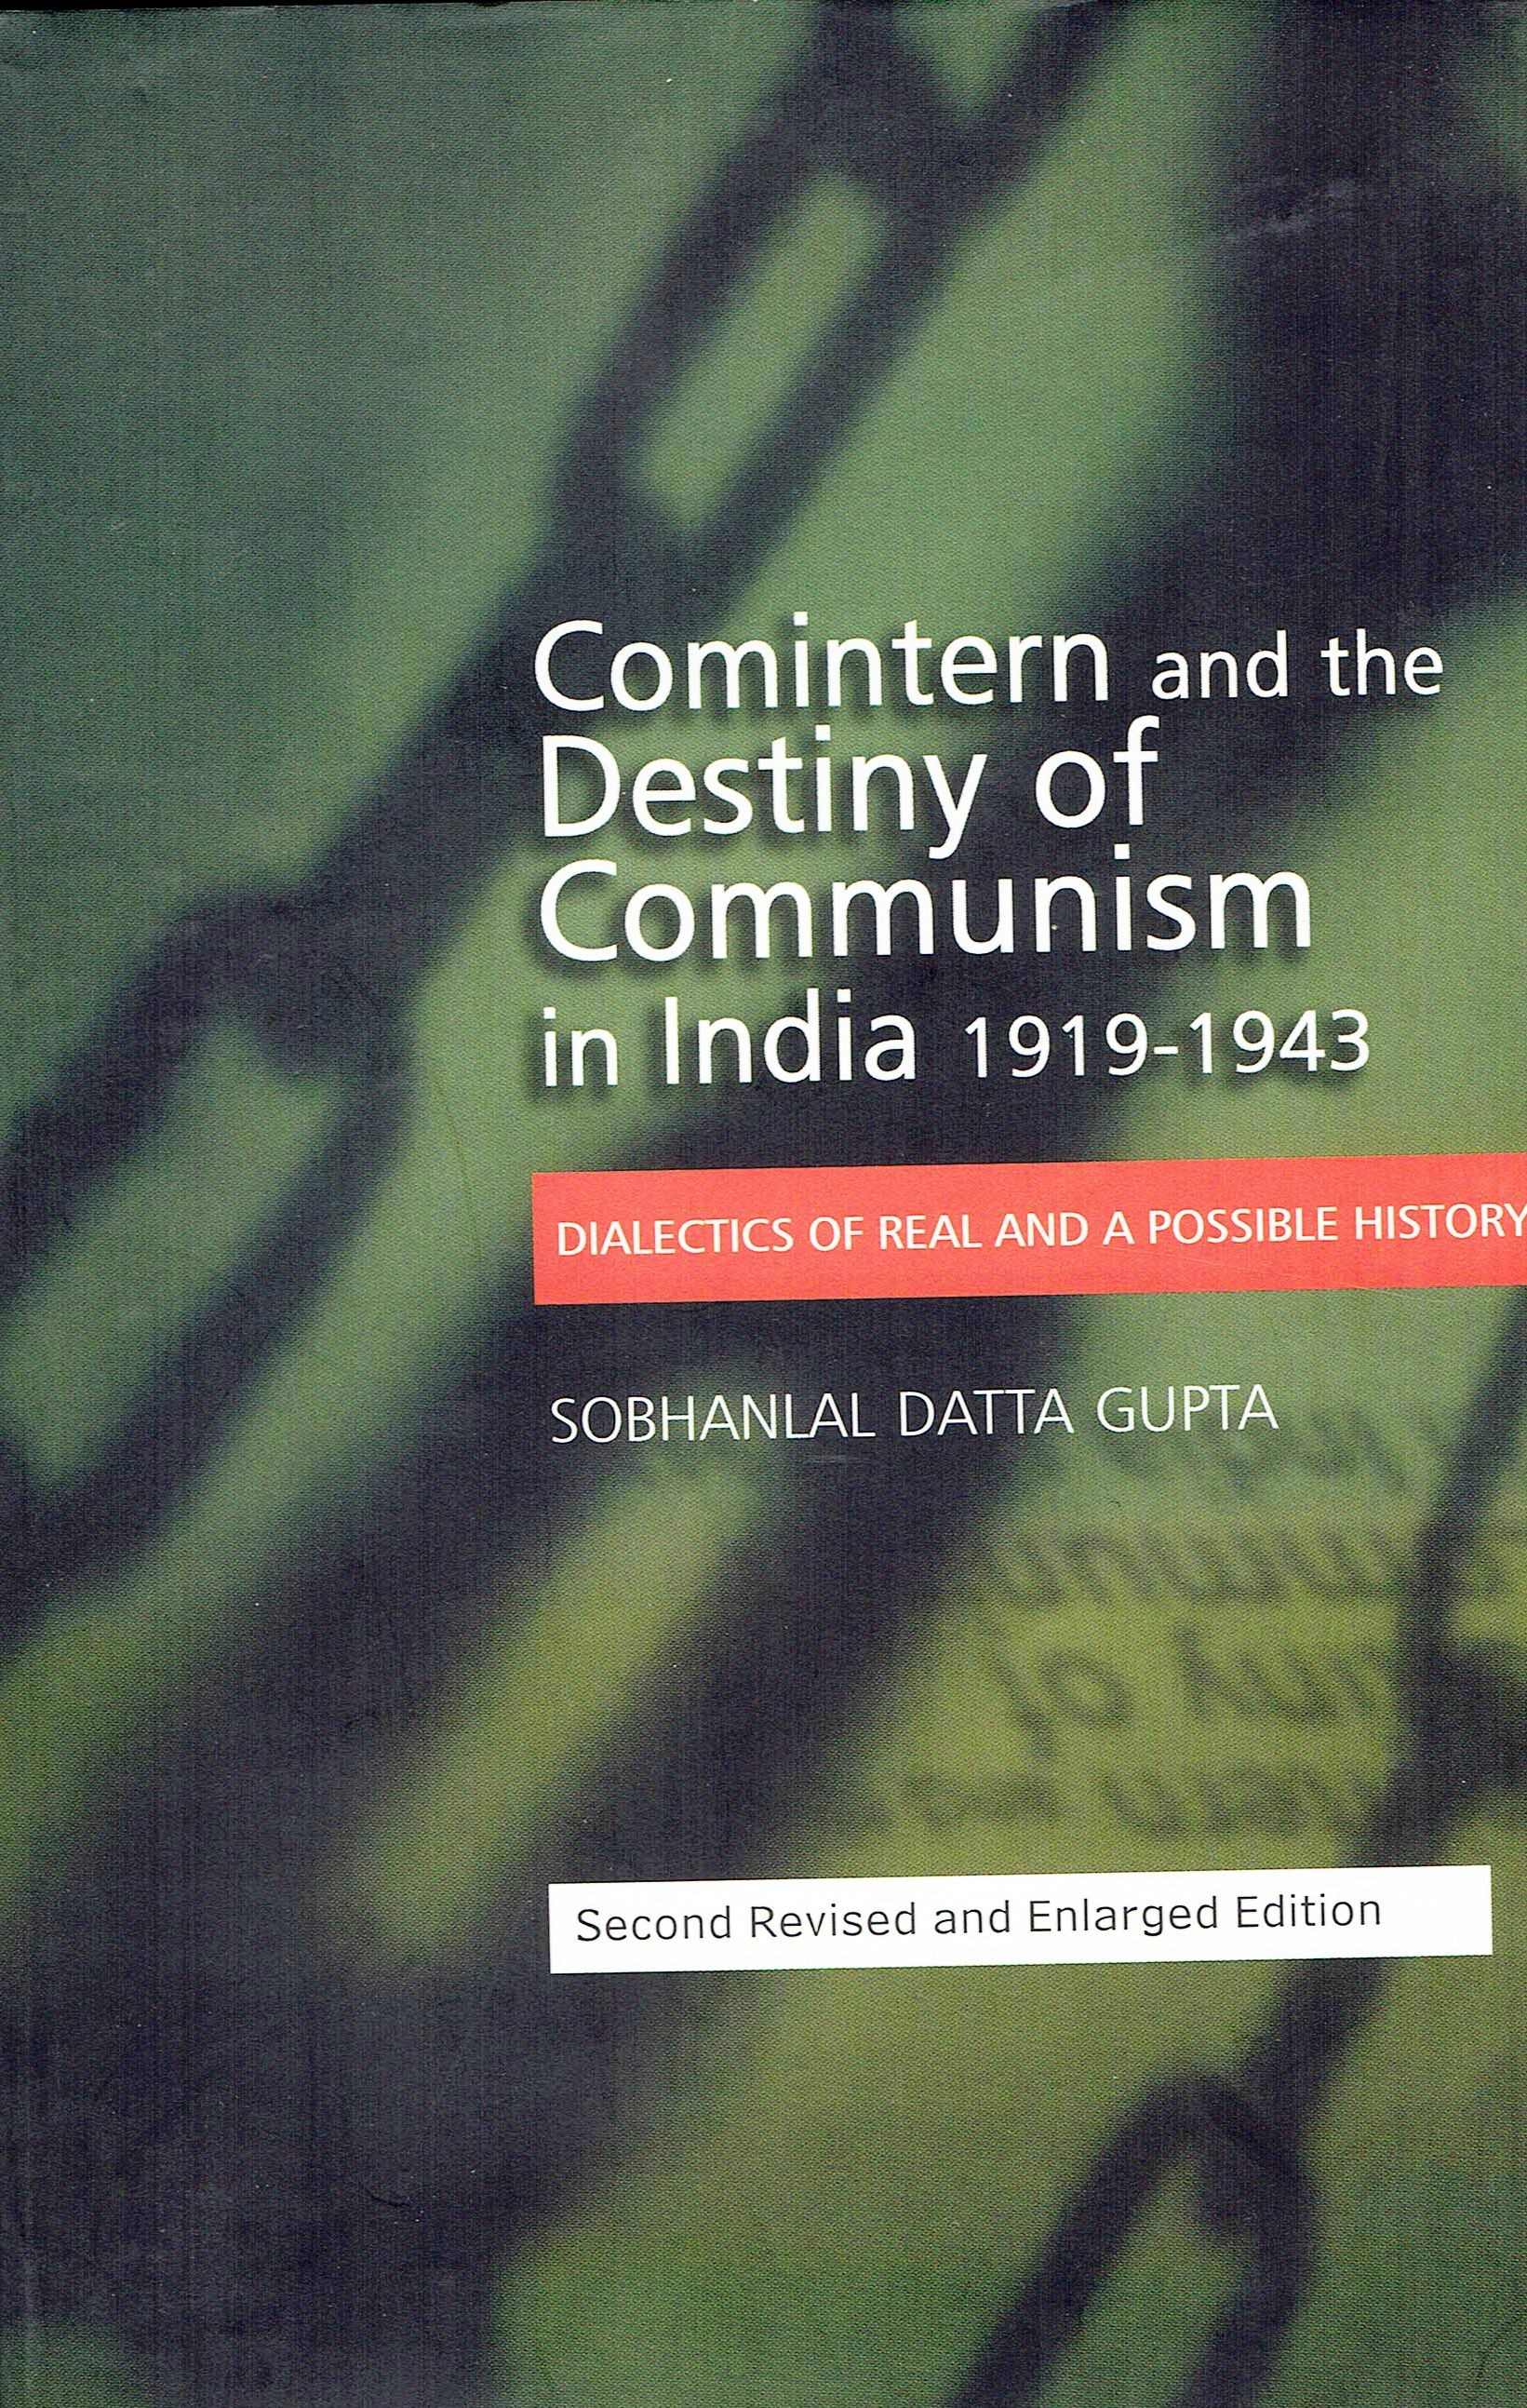 Comintern and the Destiny of Communism in India 1919-1943